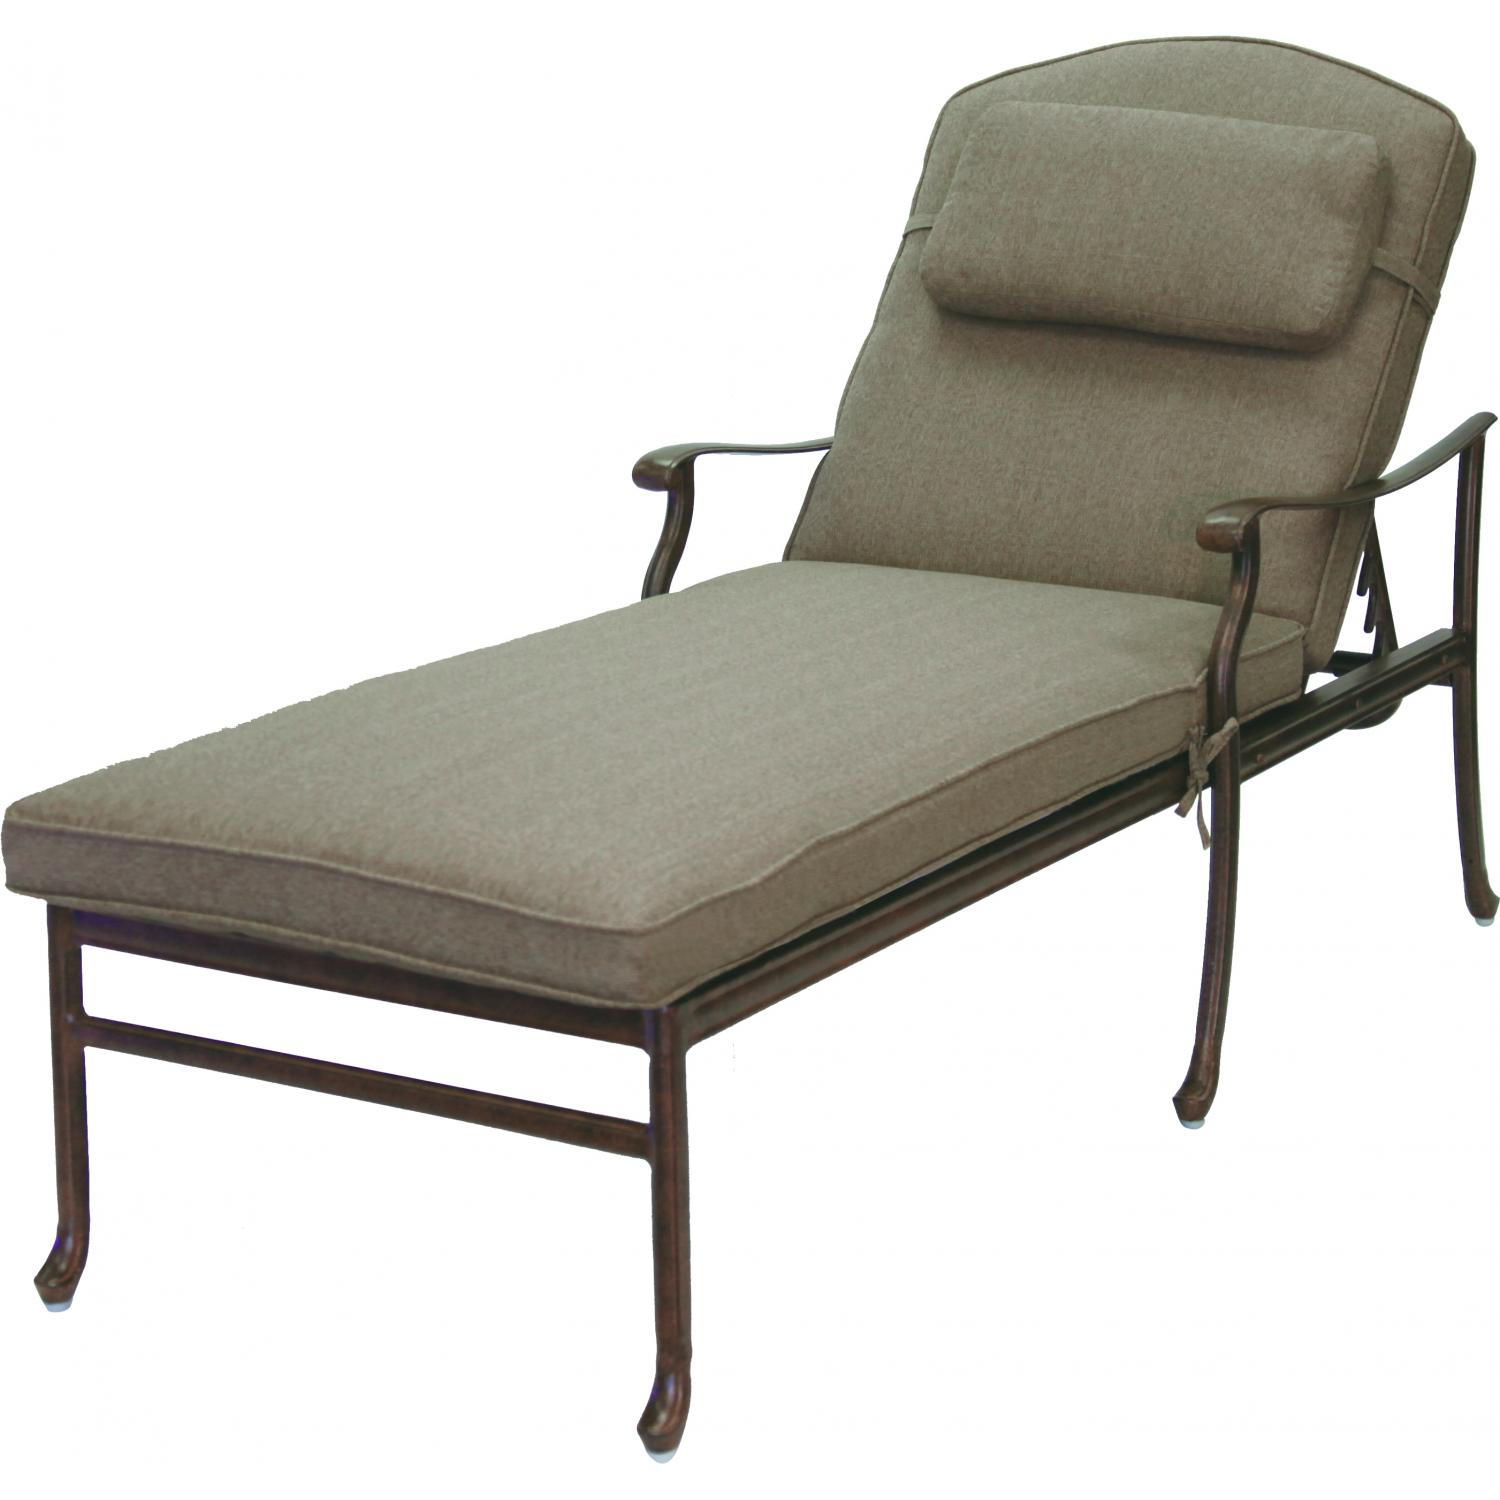 Darlee Sedona Cast Aluminum Patio Chaise Lounge Antique Bronze